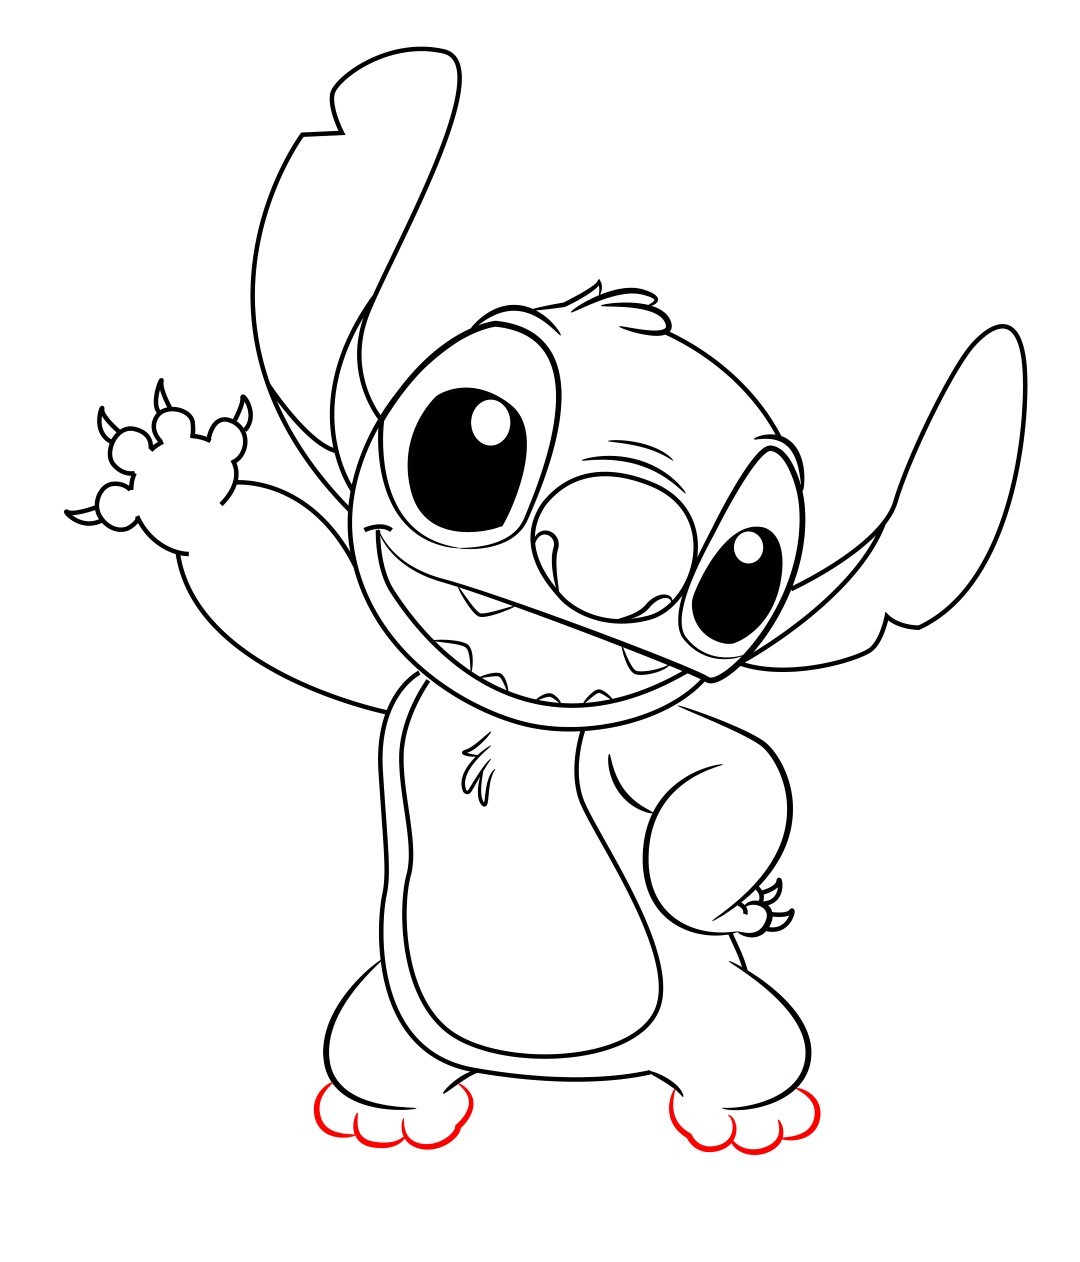 1080x1262 Stitch Cartoon Drawing Gallery Stitch Sketch Stepstep,